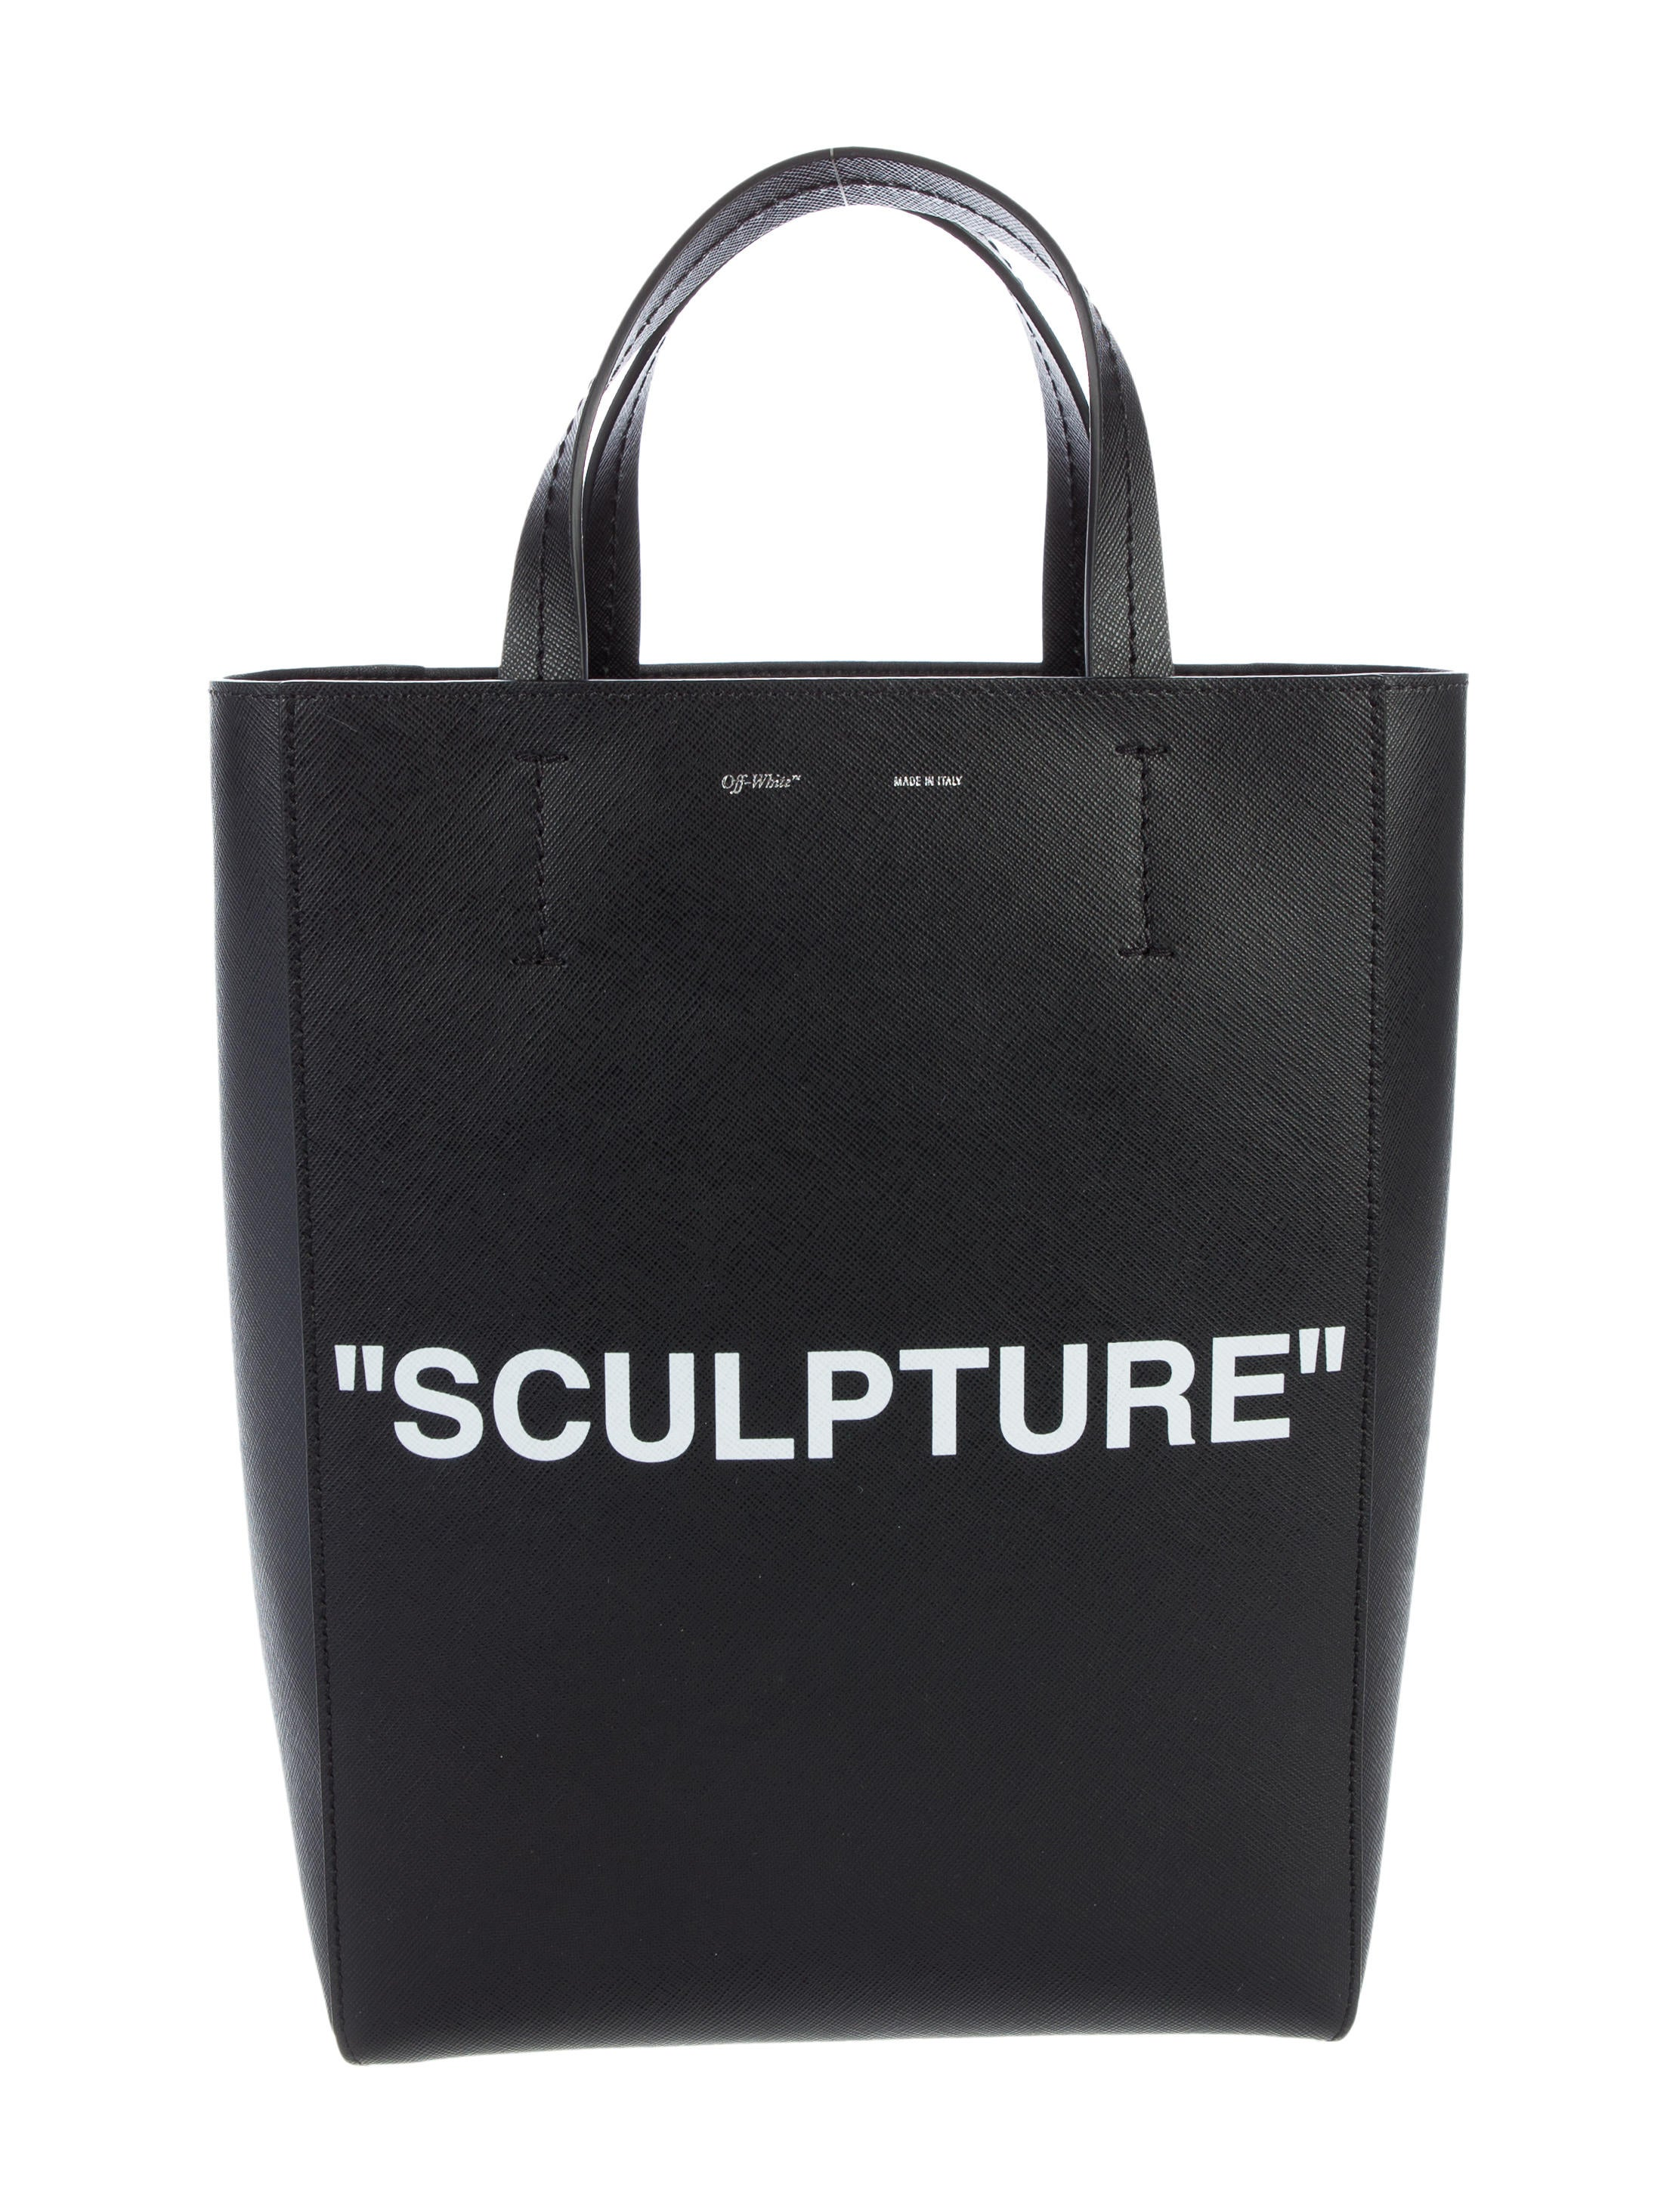 Off-White 2017 Sculpture Tote - Handbags - OFF20156 | The RealReal